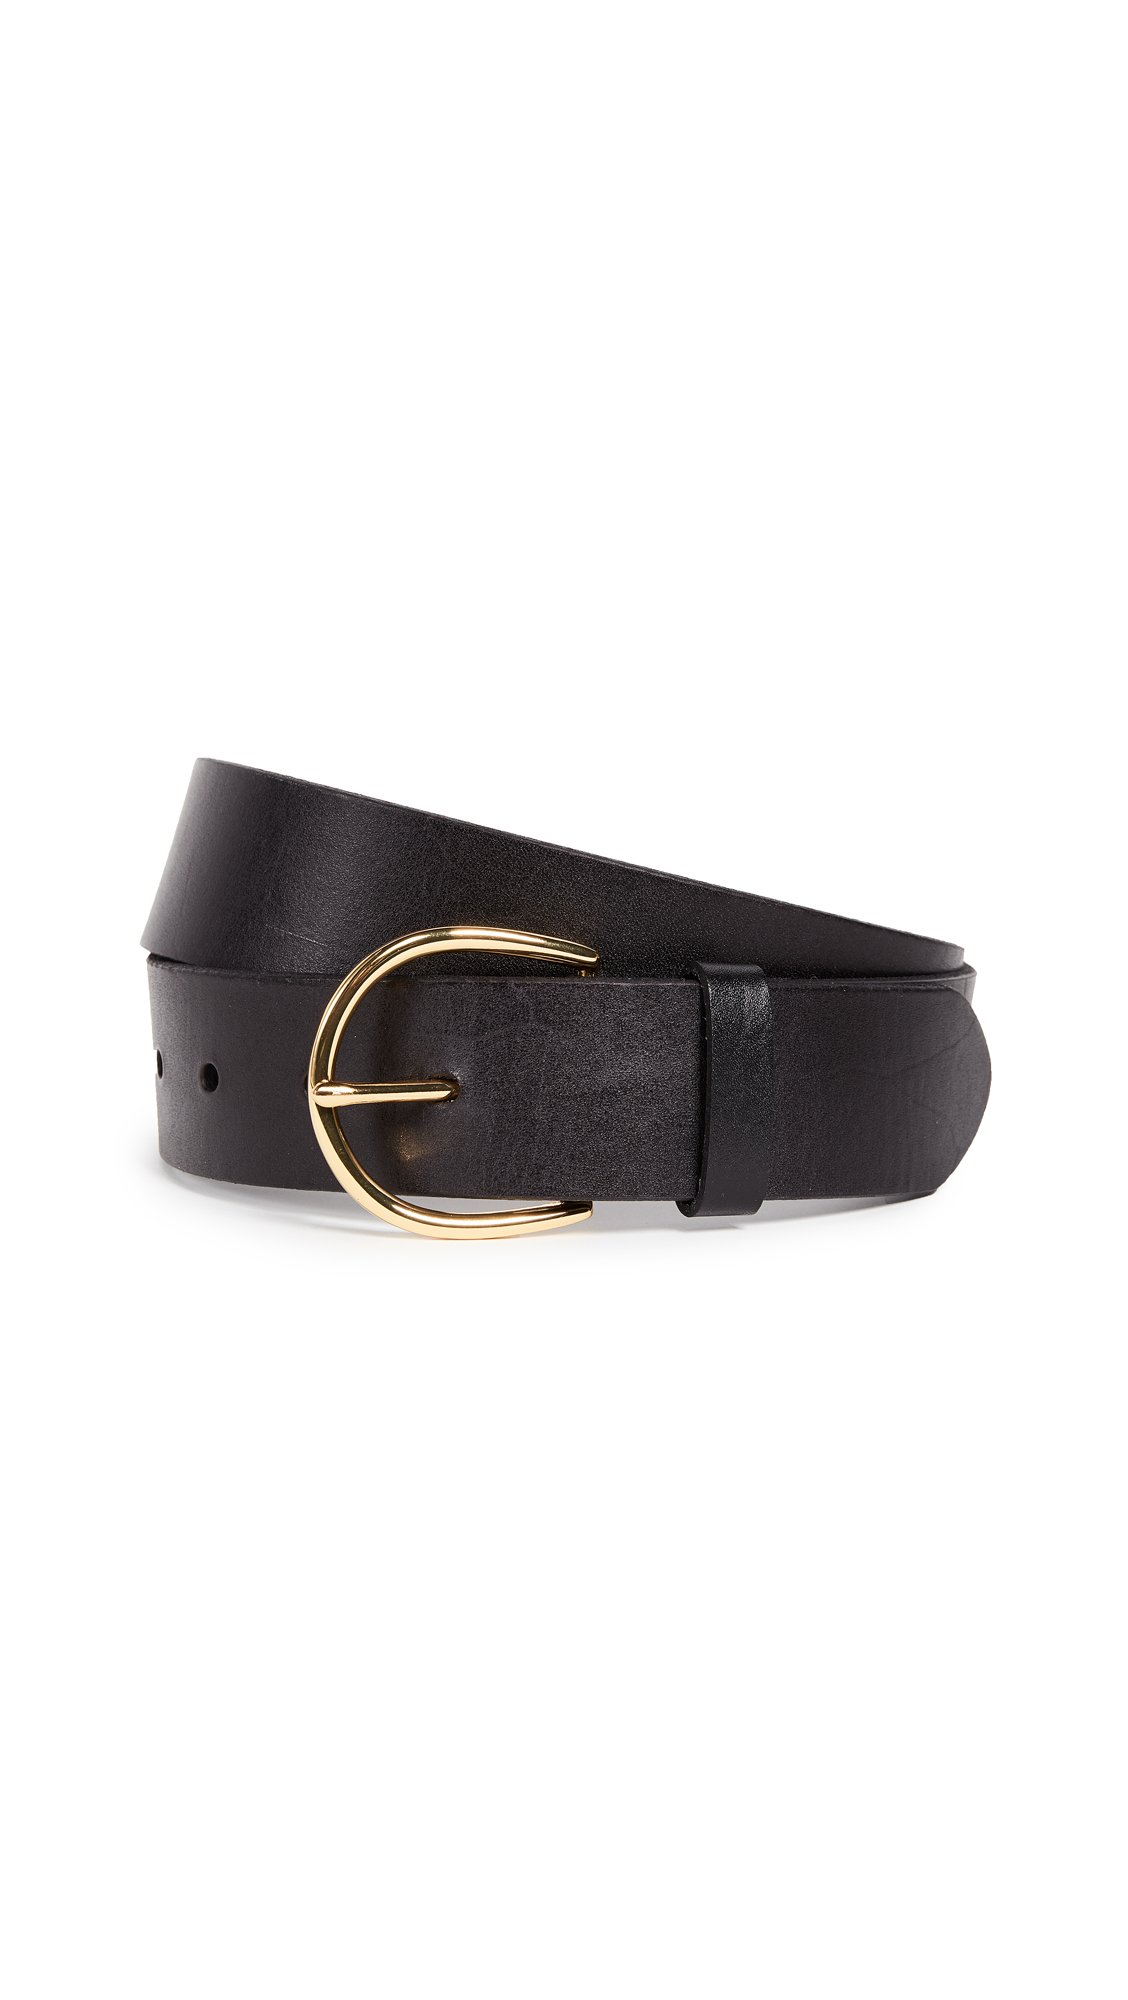 FRAME Women's U-Buckle Belt, Noir, Medium